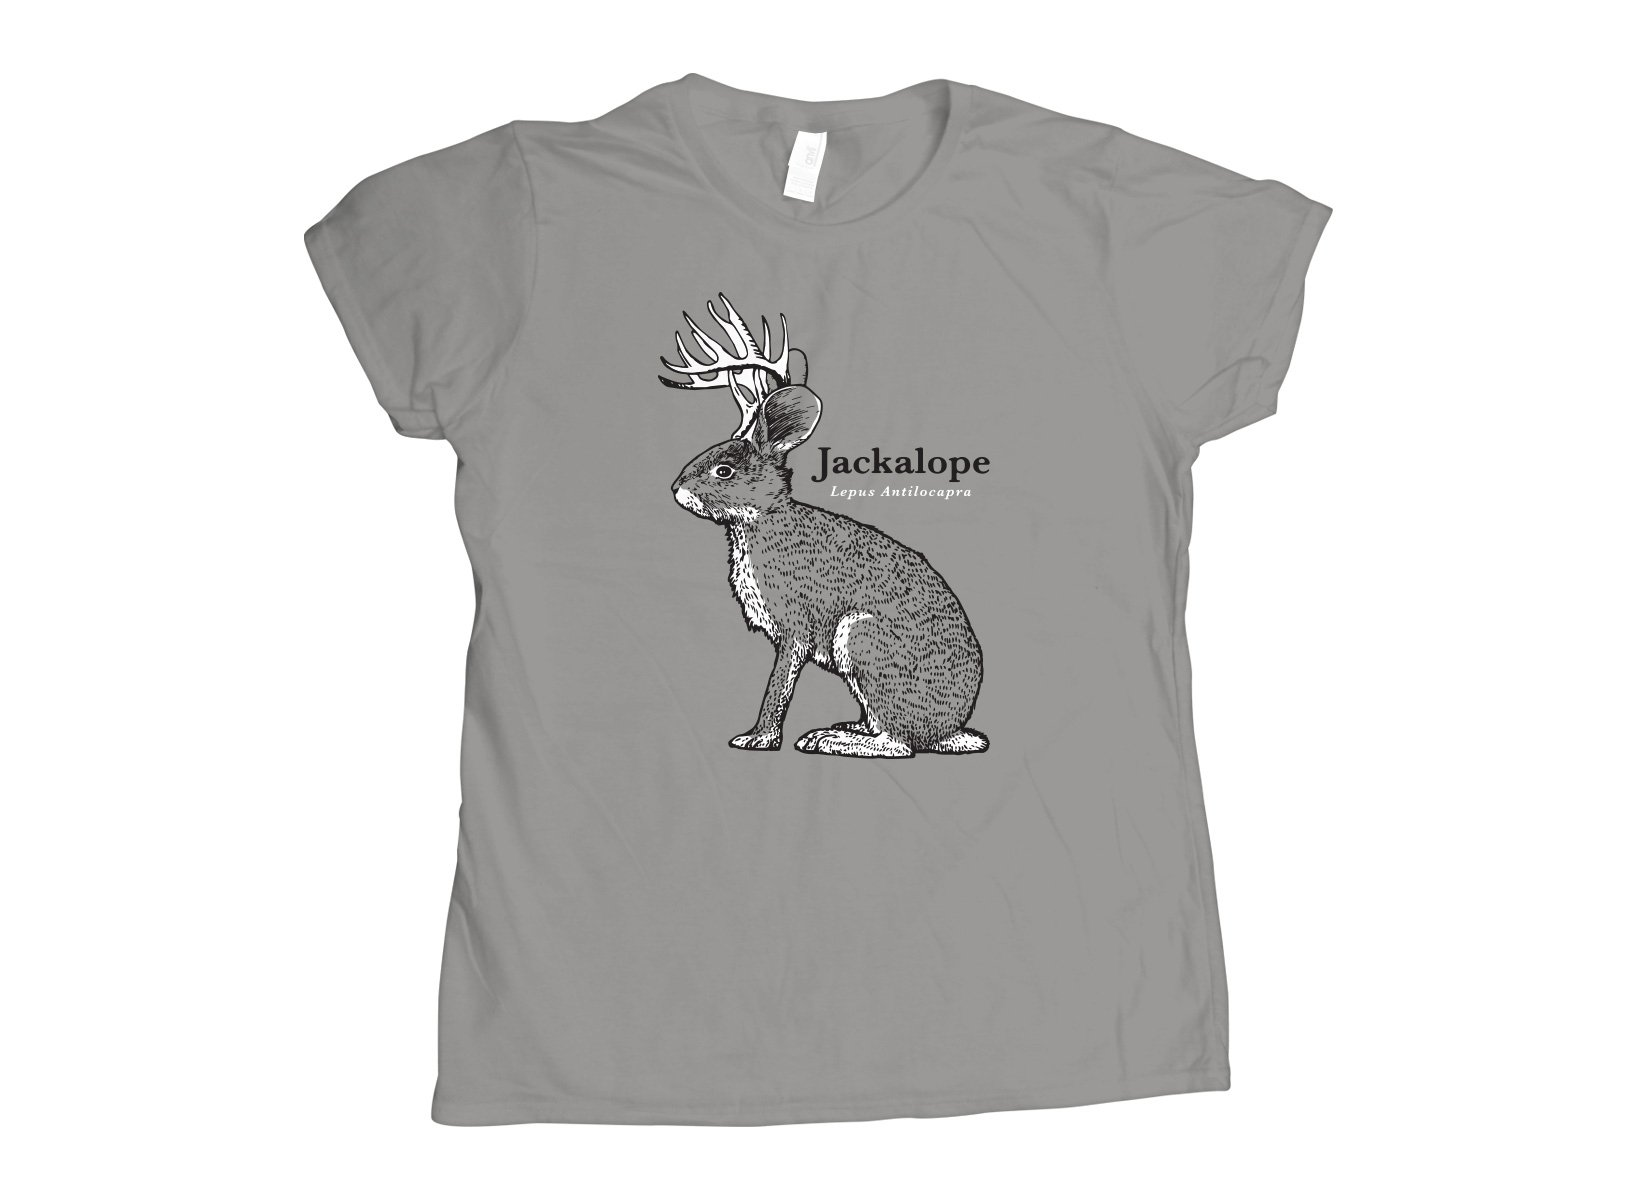 Jackalope on Womens T-Shirt